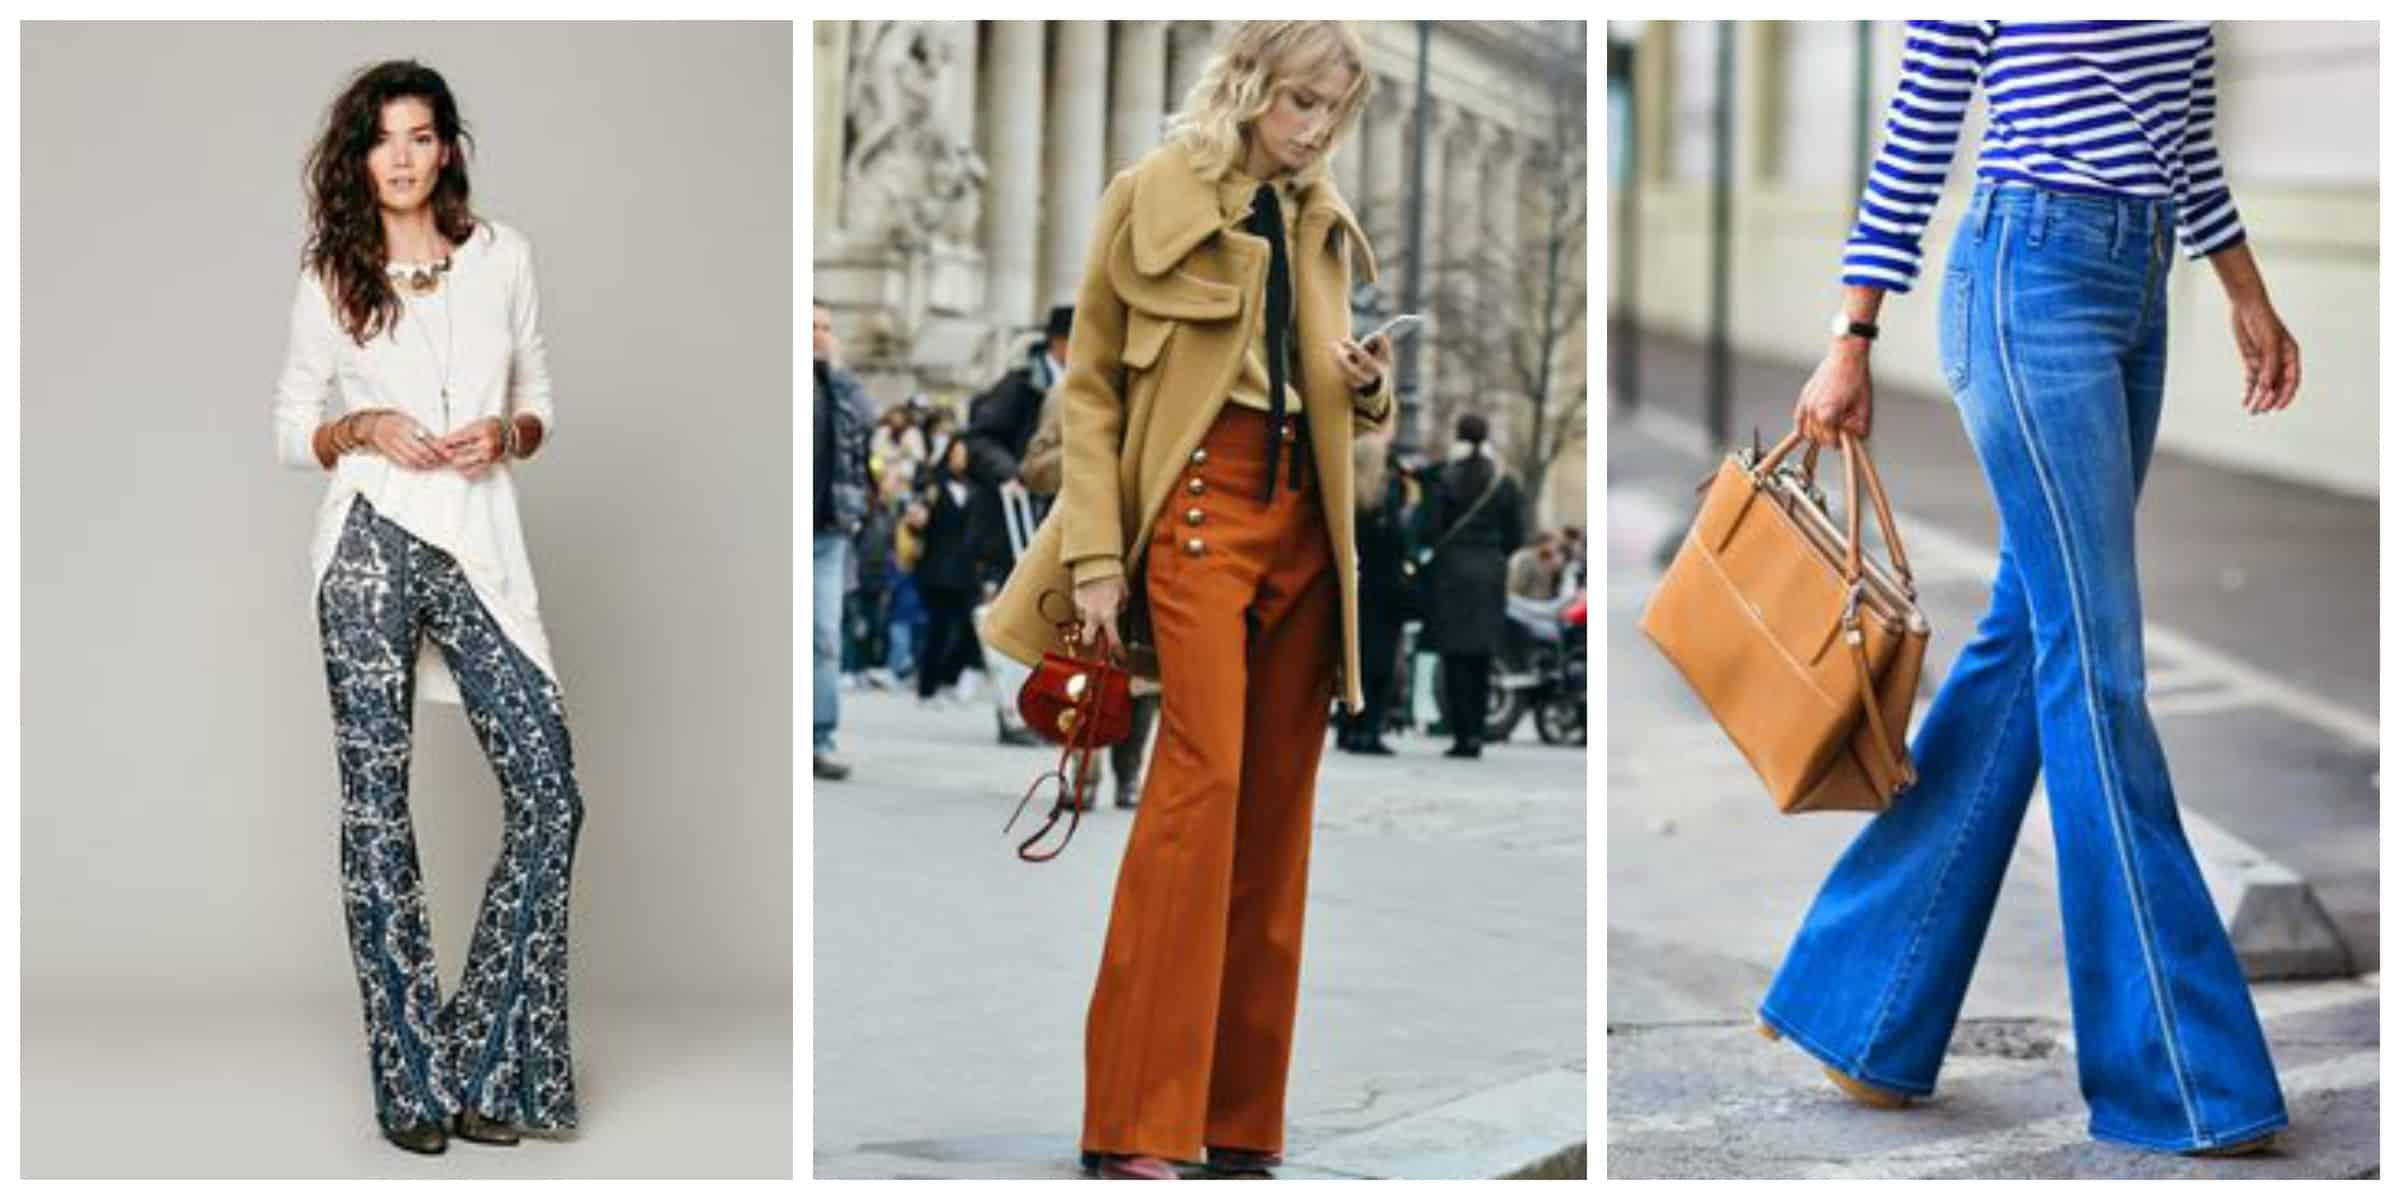 Style Année 70 1970s Fashion 10 Things You Need This Spring To Get The